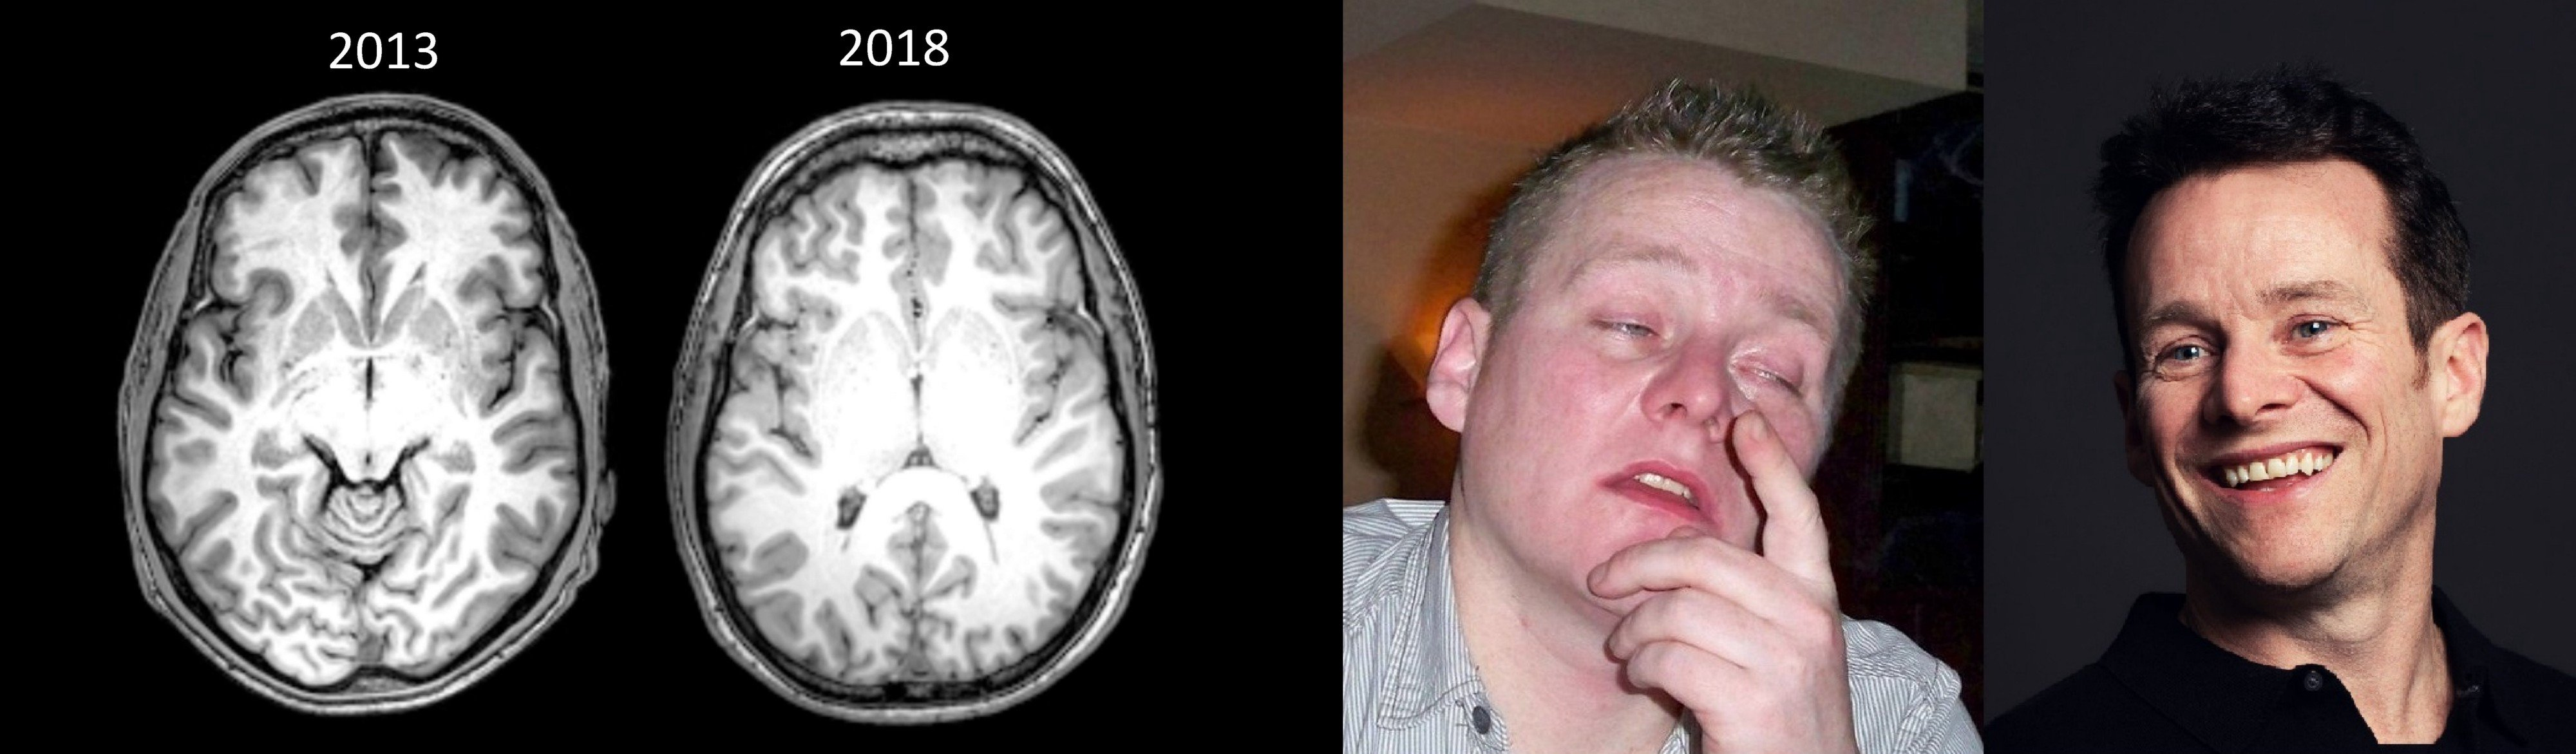 Source: Unprocessed scans of my brain taken in 2013 and 2018. These scans contain the slice showing the anterior commissure, the standard anatomical structure used to compare brain scans. It was difficult to make exact slice comparisons as the images were scanned on different MRI machines using a different resolution.